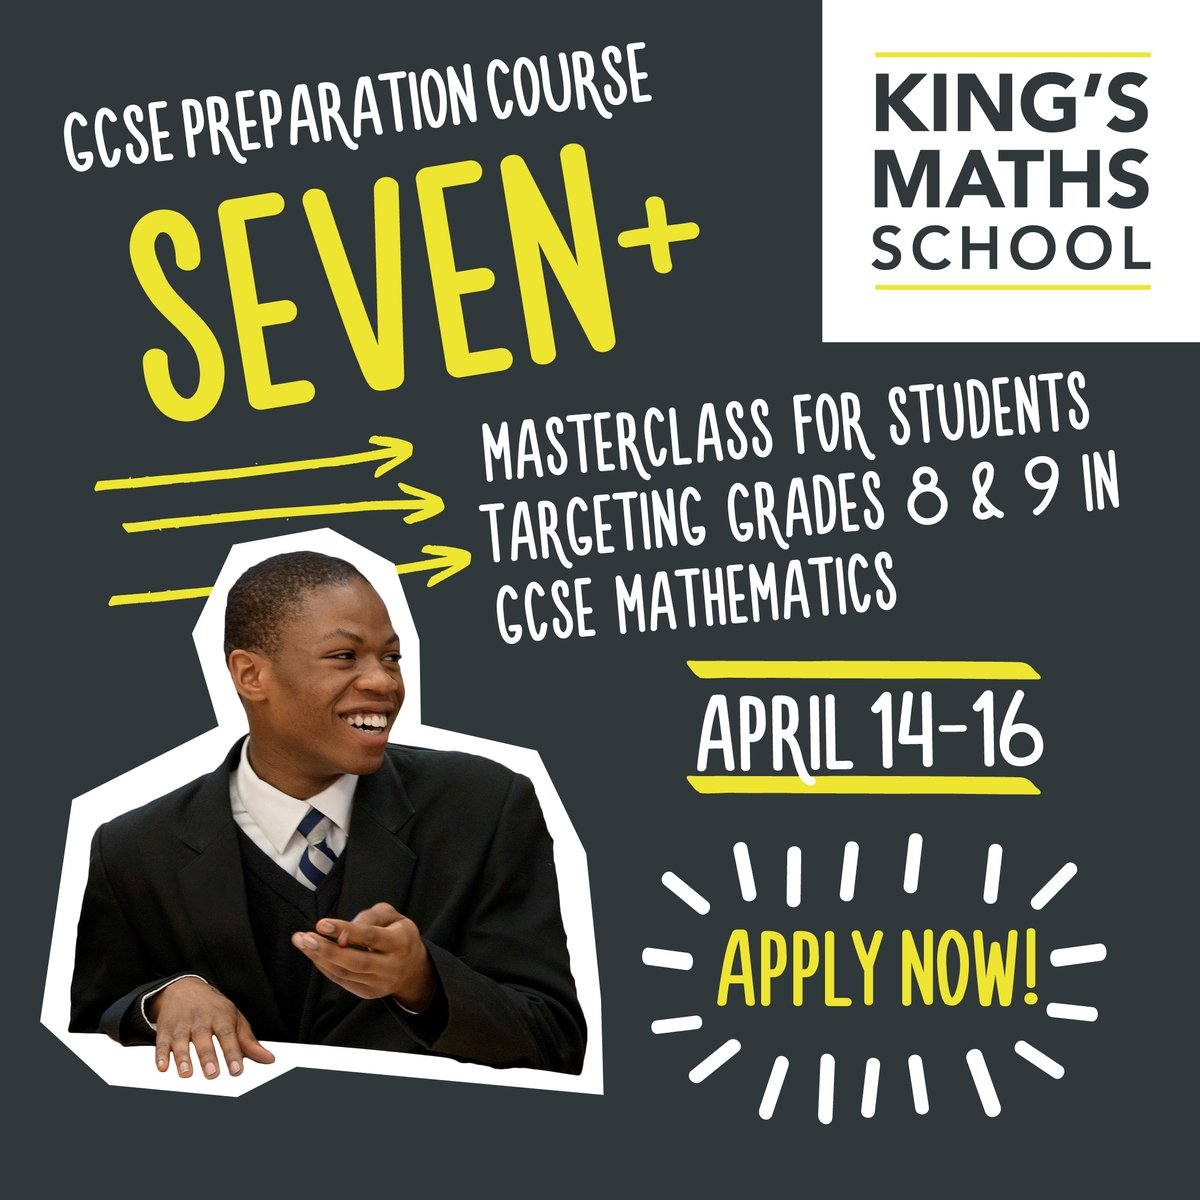 Are you in year 11? Do you like #maths? Our SEVEN+ could be for you - find out more and apply today!   Applications close Tuesday 25 February 👉  #GCSE #GCSEmaths